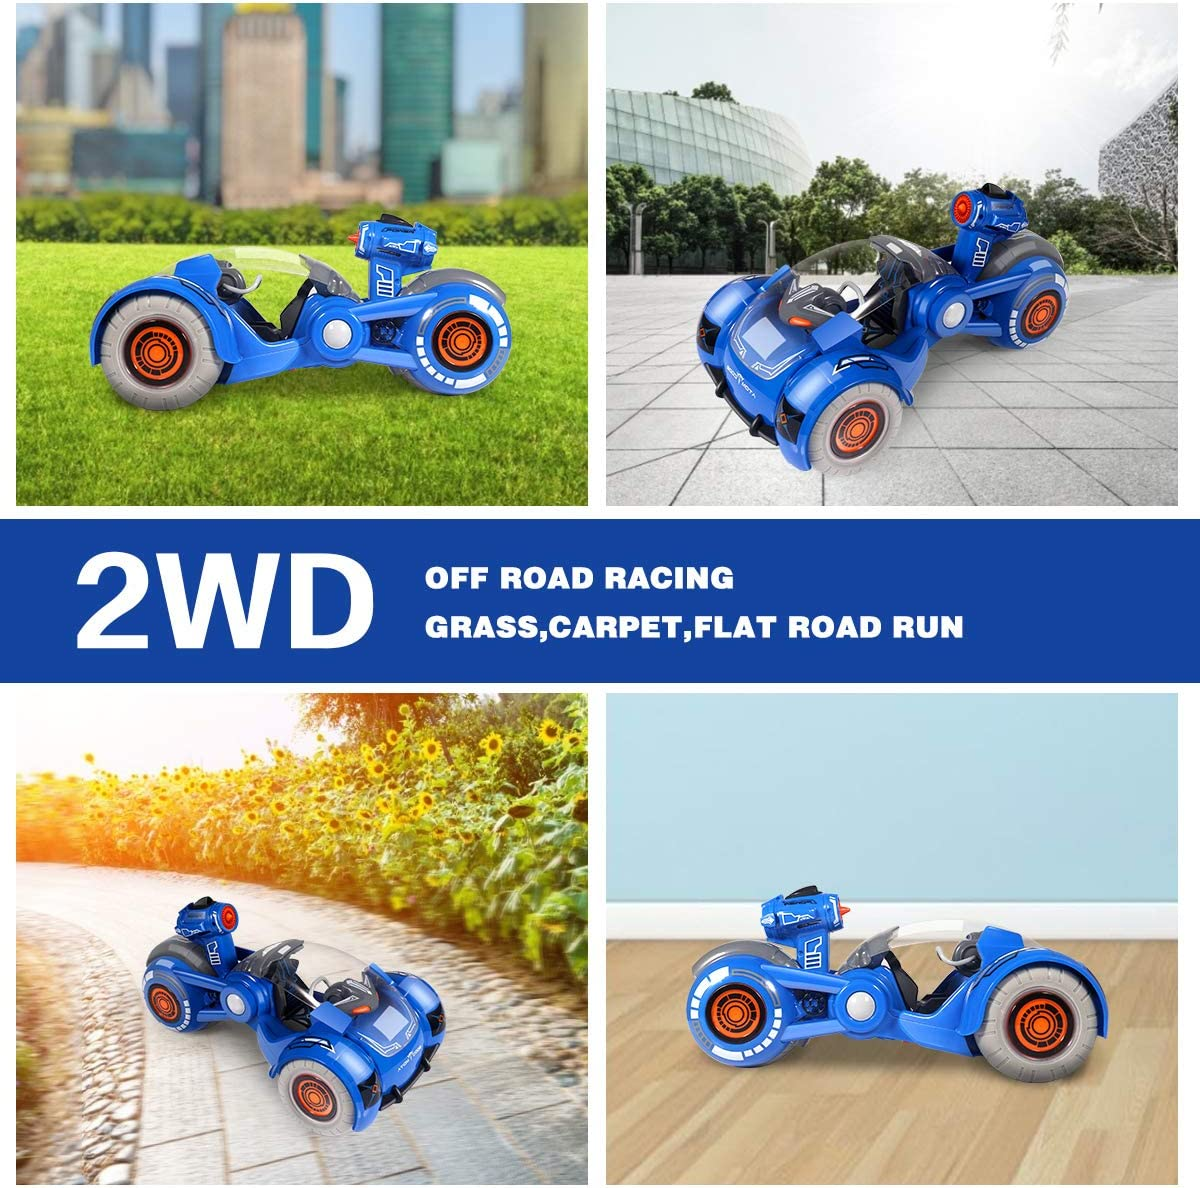 1:12 Scale Electric Race Stunt Car with Spray Function Rechargeable and Adjustable Lighting Mode Toy Car for Kids 3-12 Years Old Remote Control Car